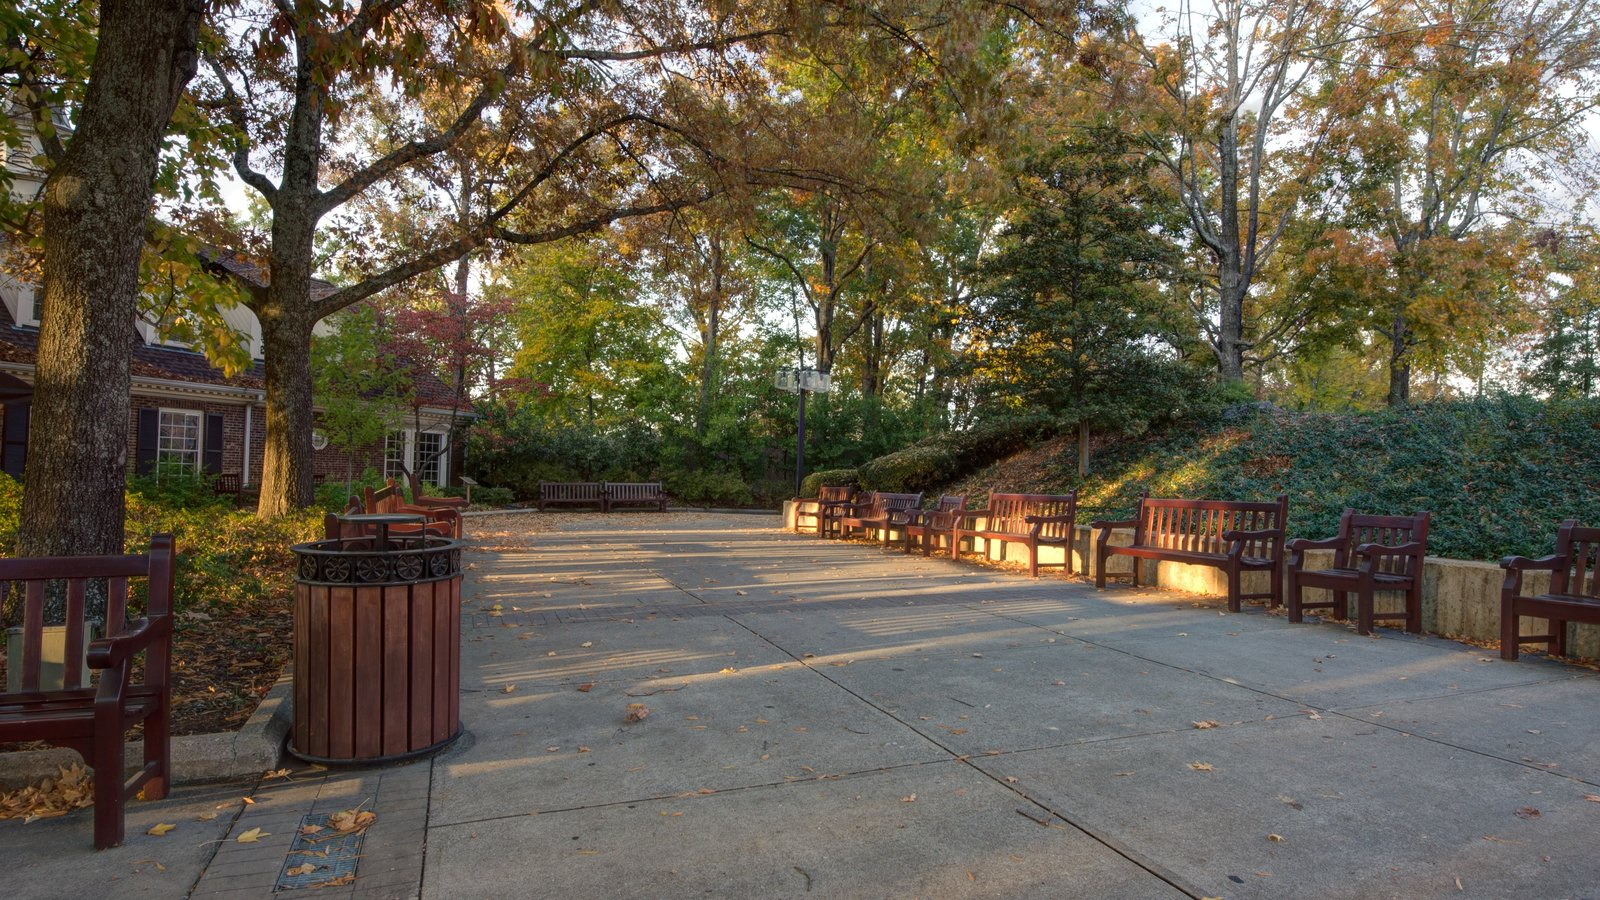 Grand Ole Opry showing a park